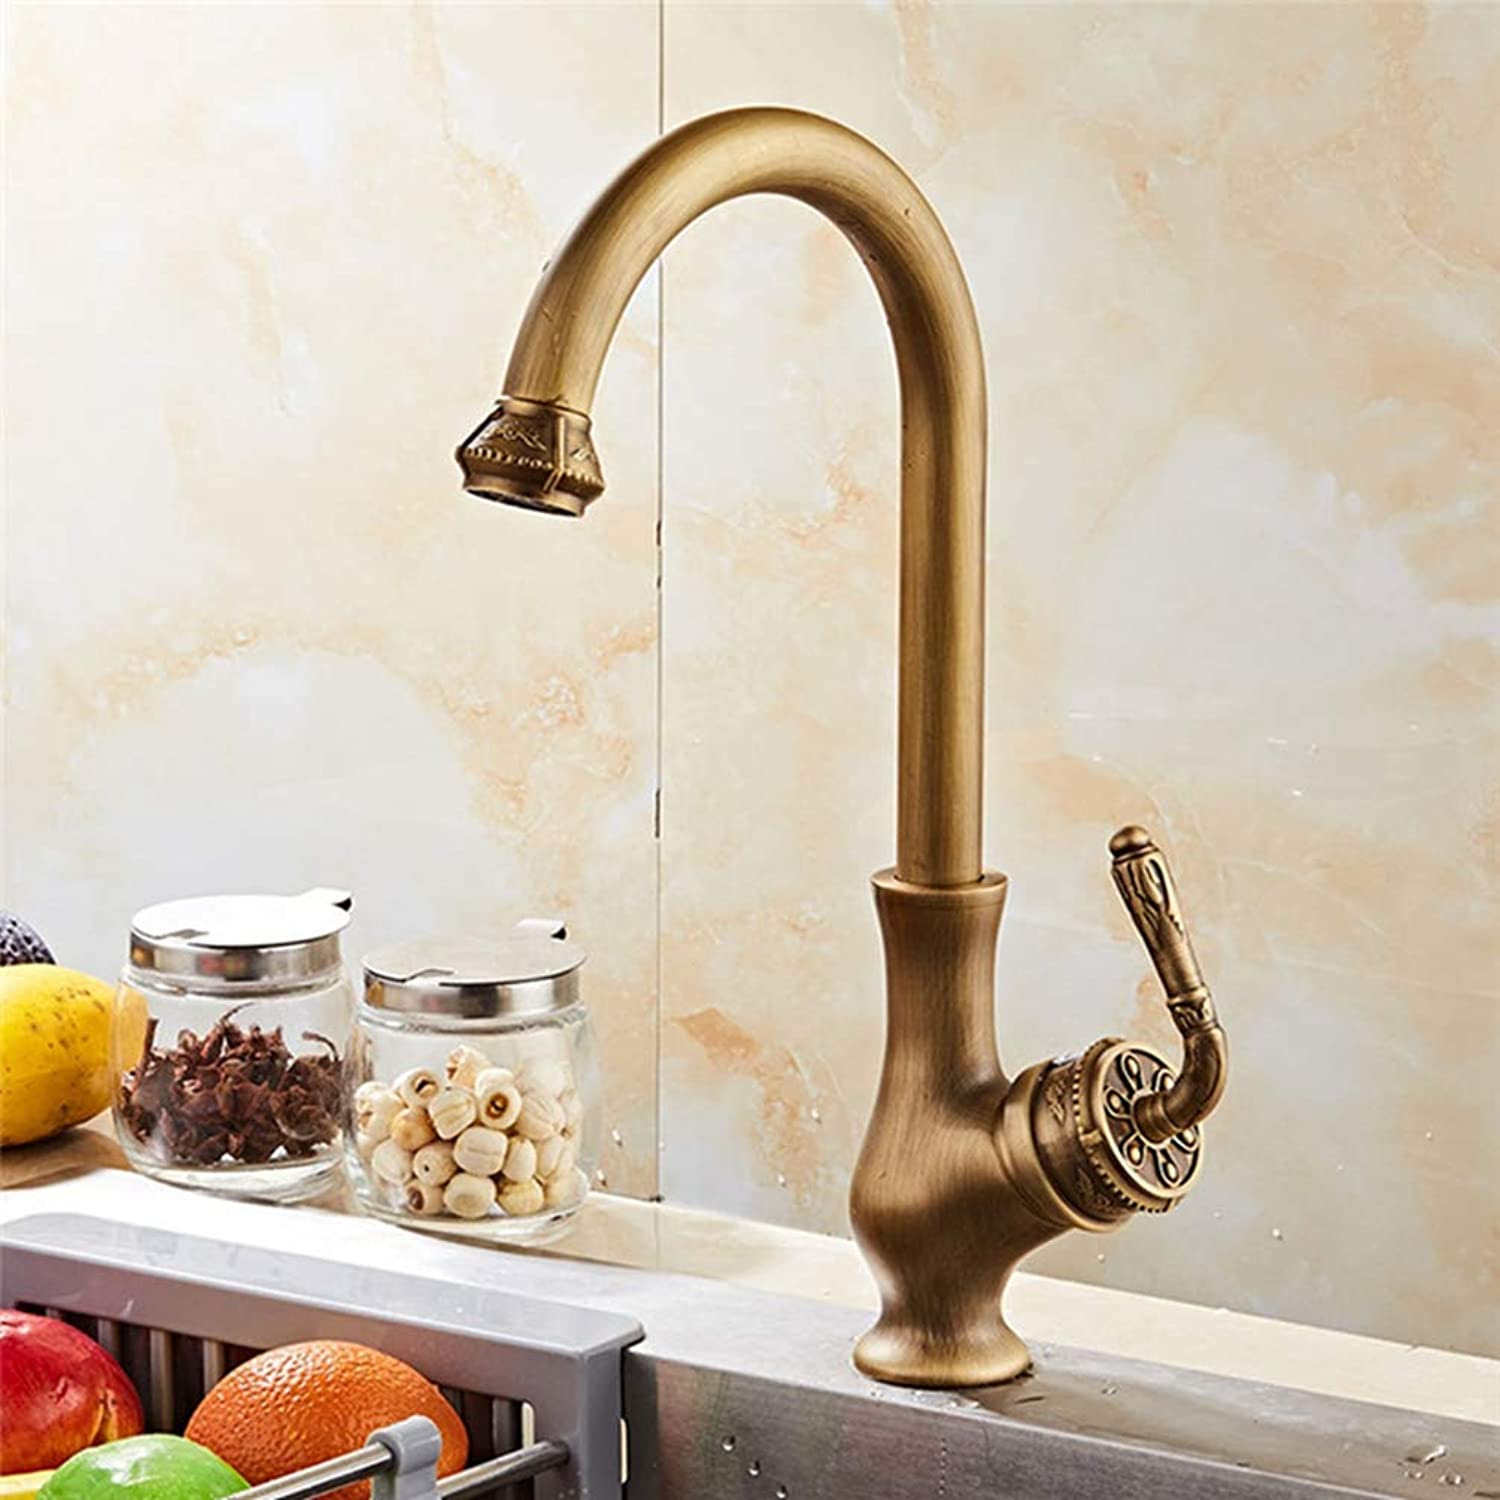 FZHLR Kitchen Faucet Copper Hot and Cold Carved Sink Faucet Vegetable Washing Basin Sink Mixer 360 Degree redating Antique Faucet